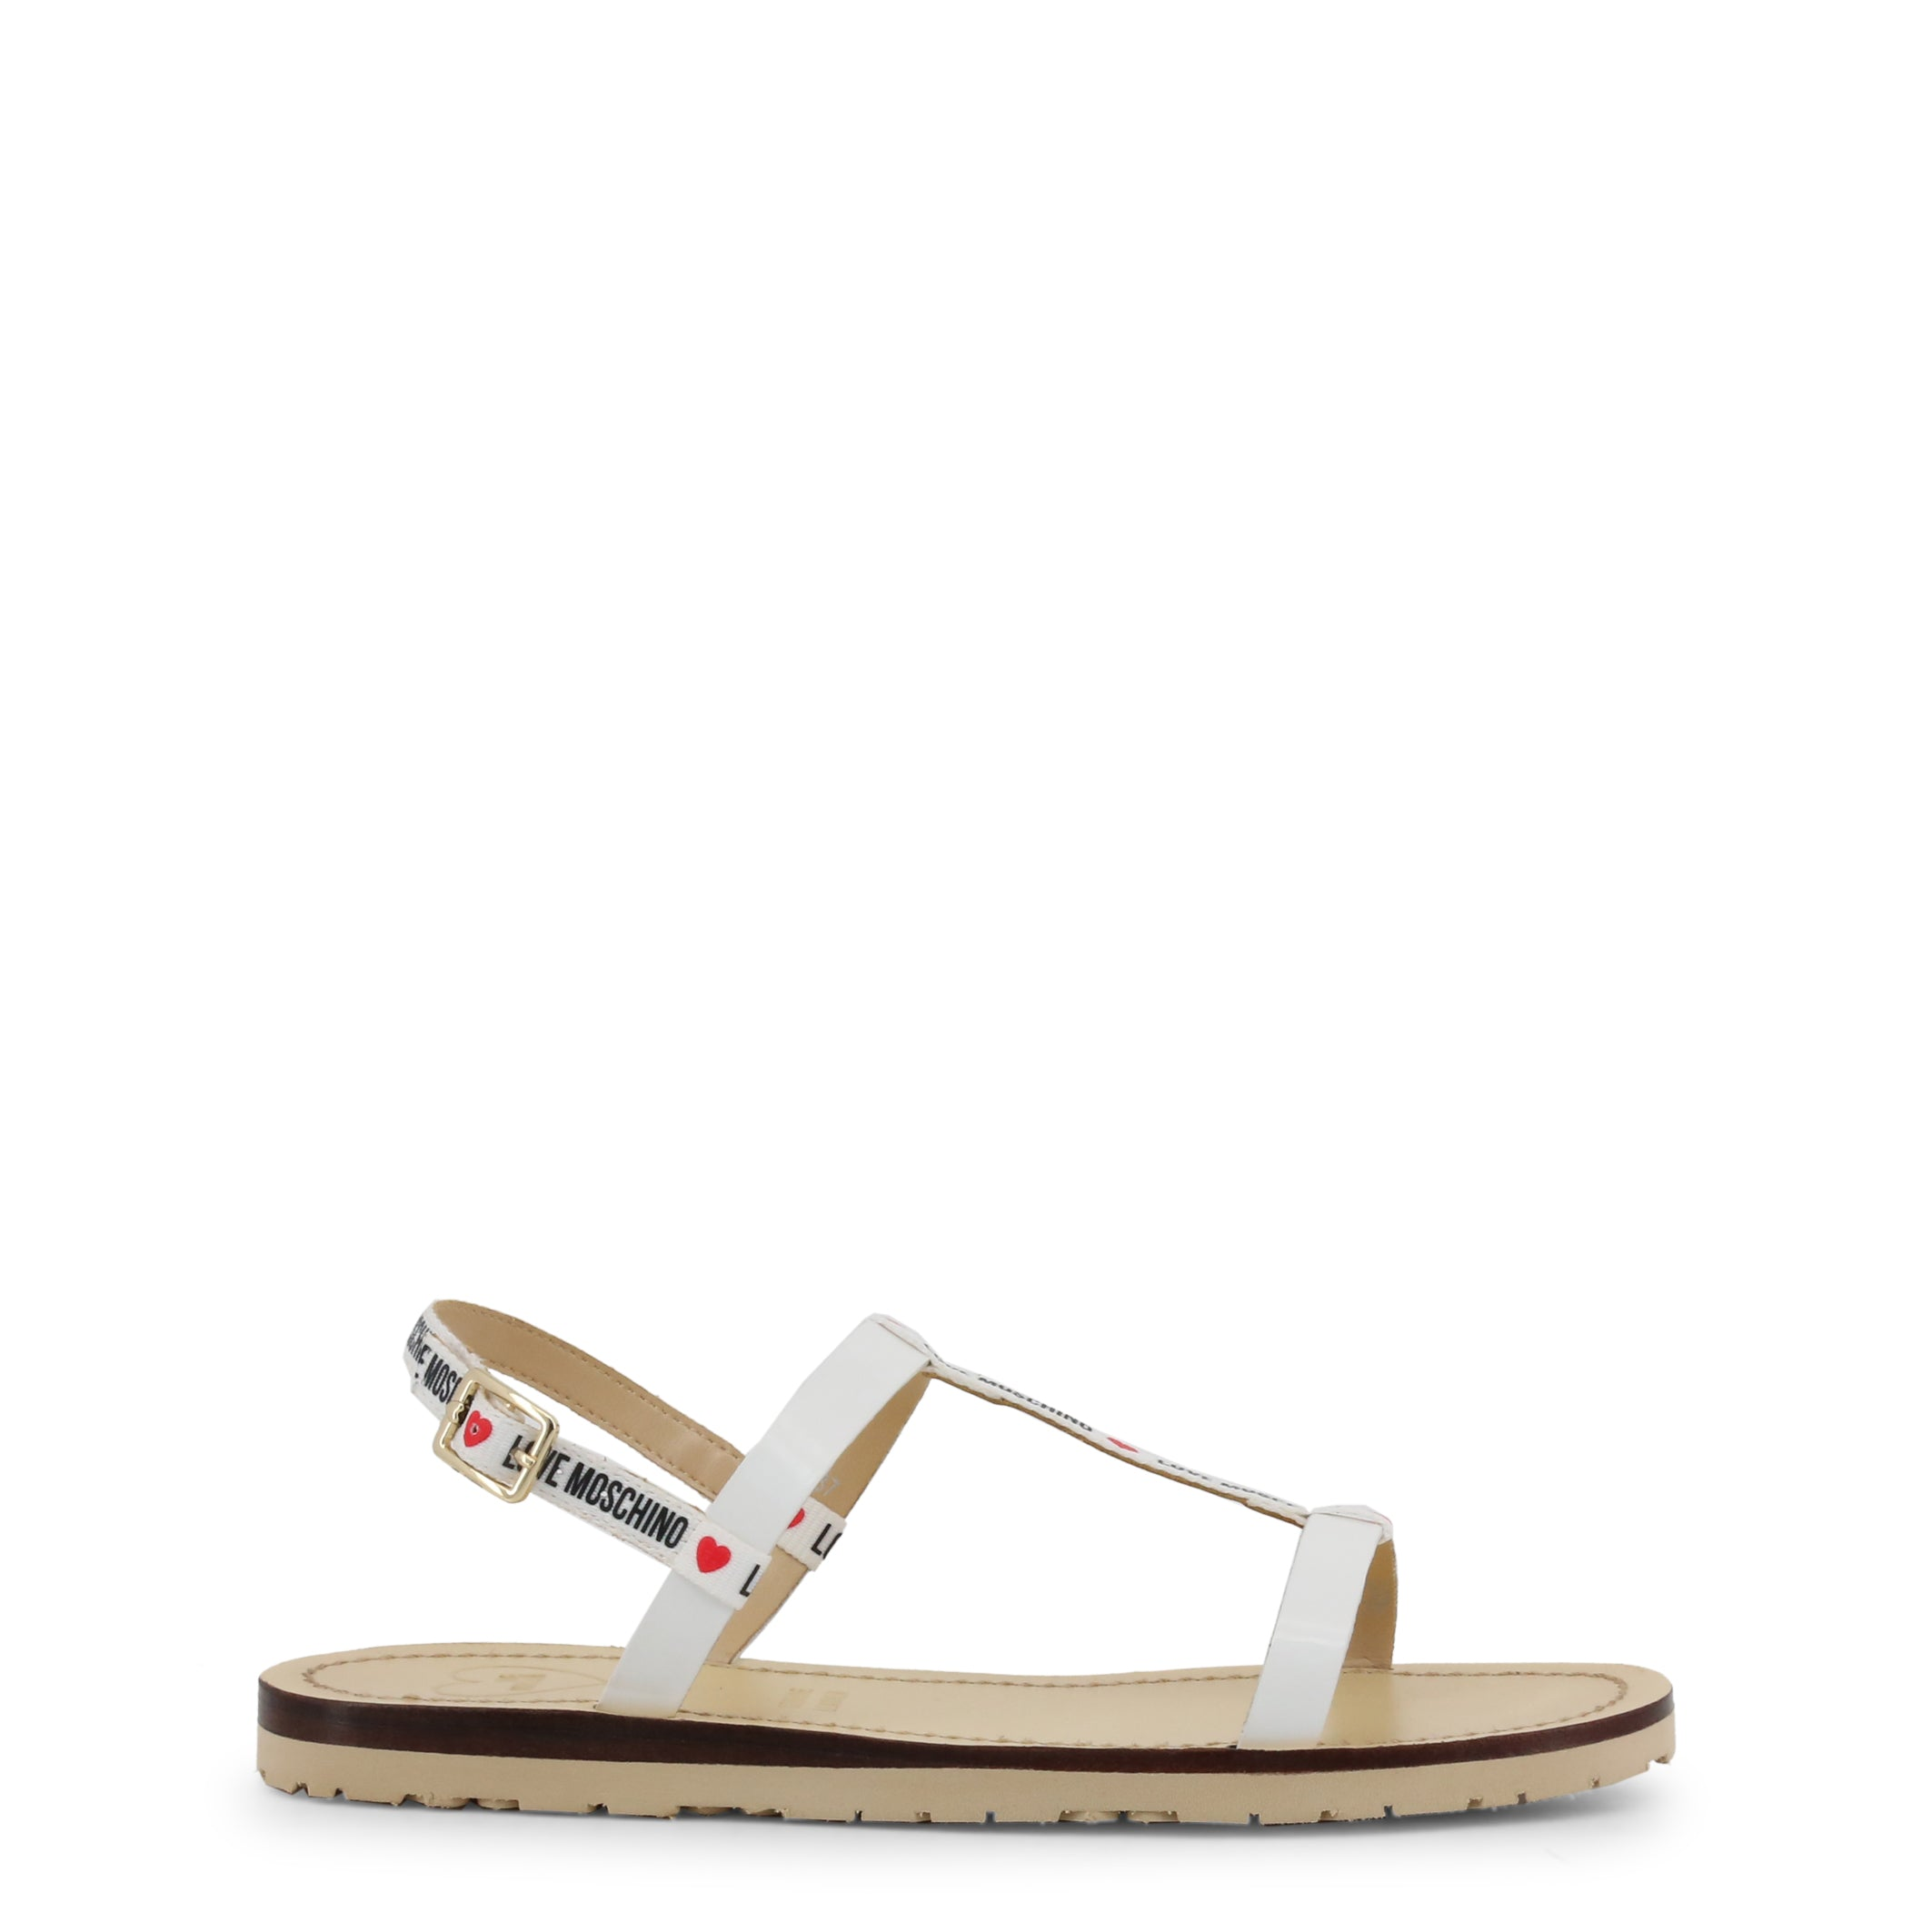 Love Moschino - JA16421G07JV - Women's Sandals